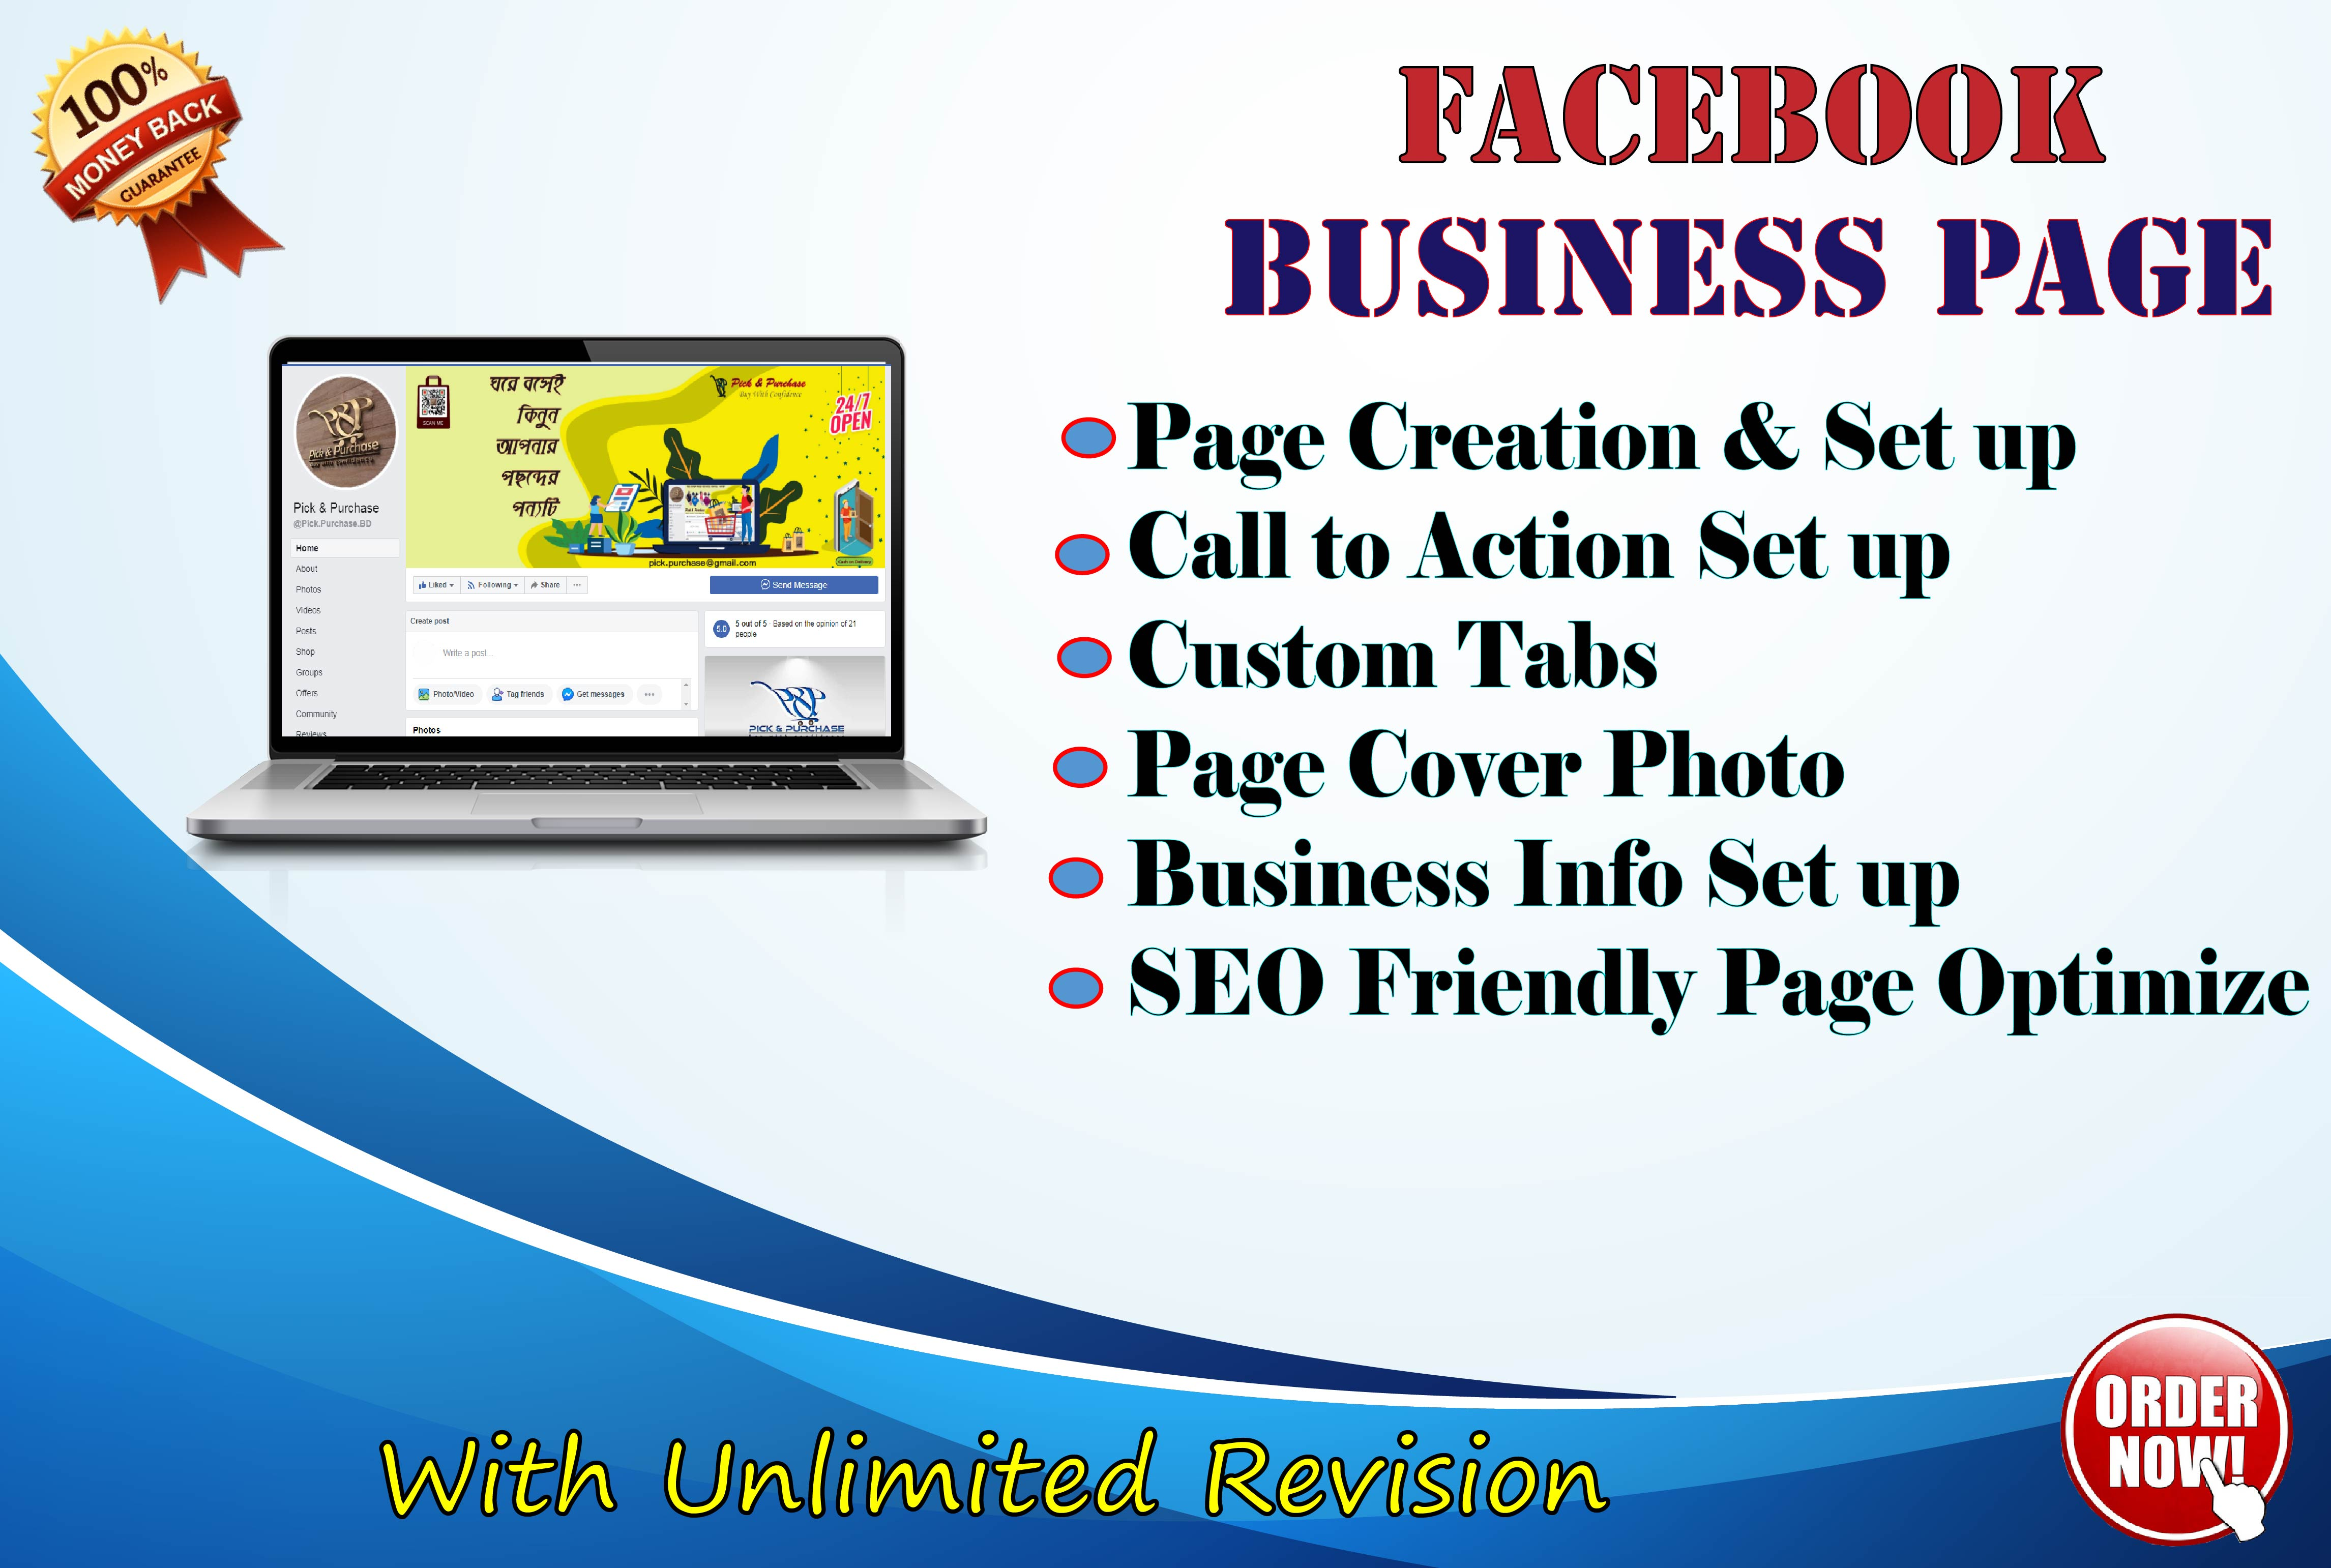 Design and create a Facebook business page